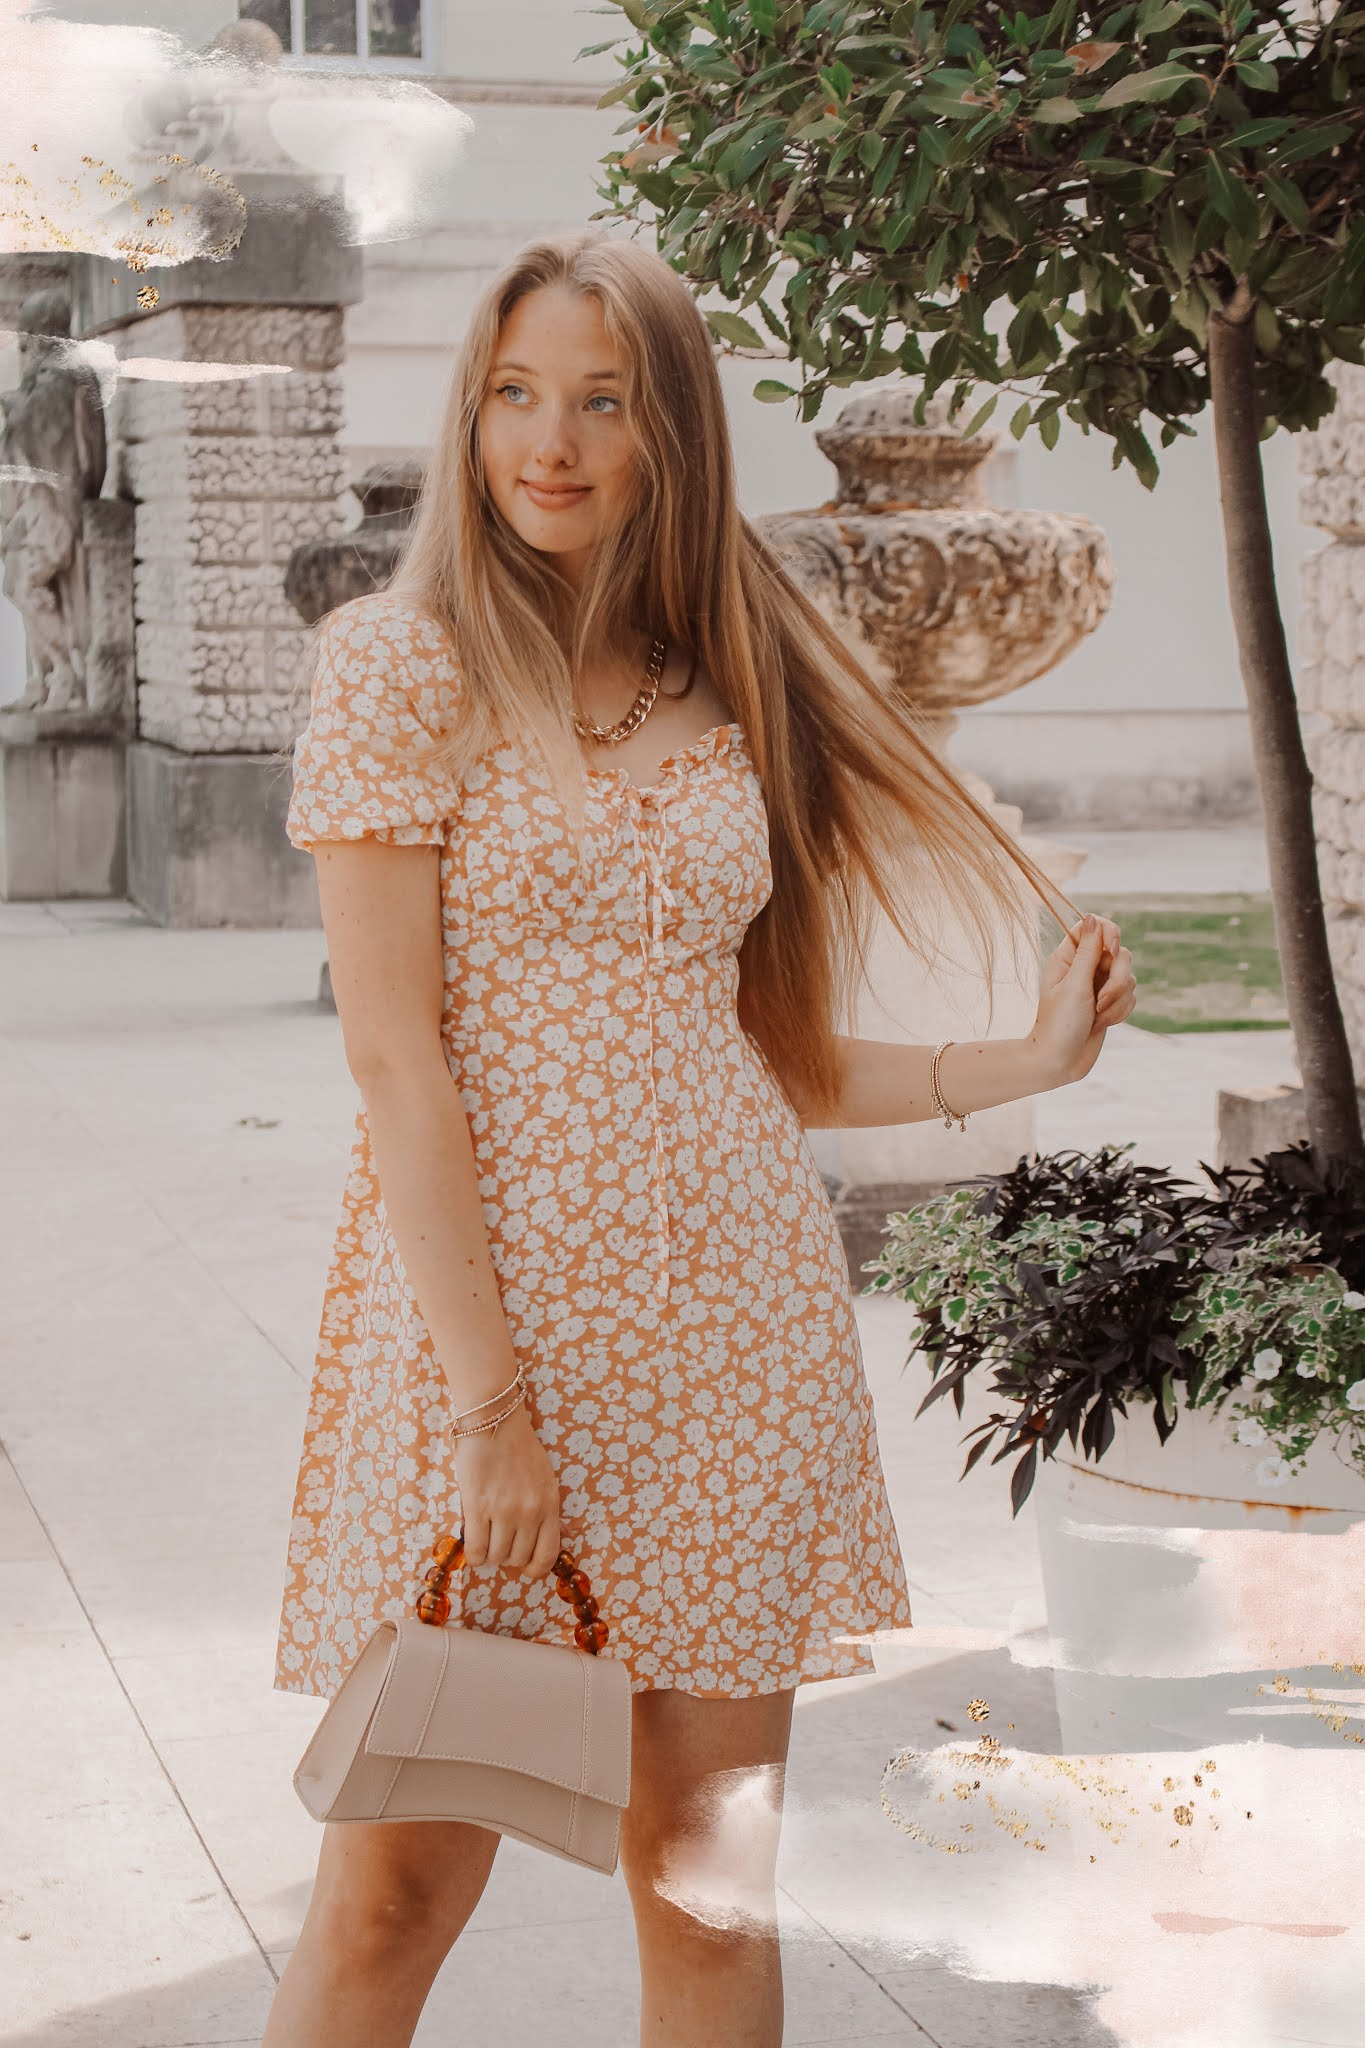 pretty little summer dress